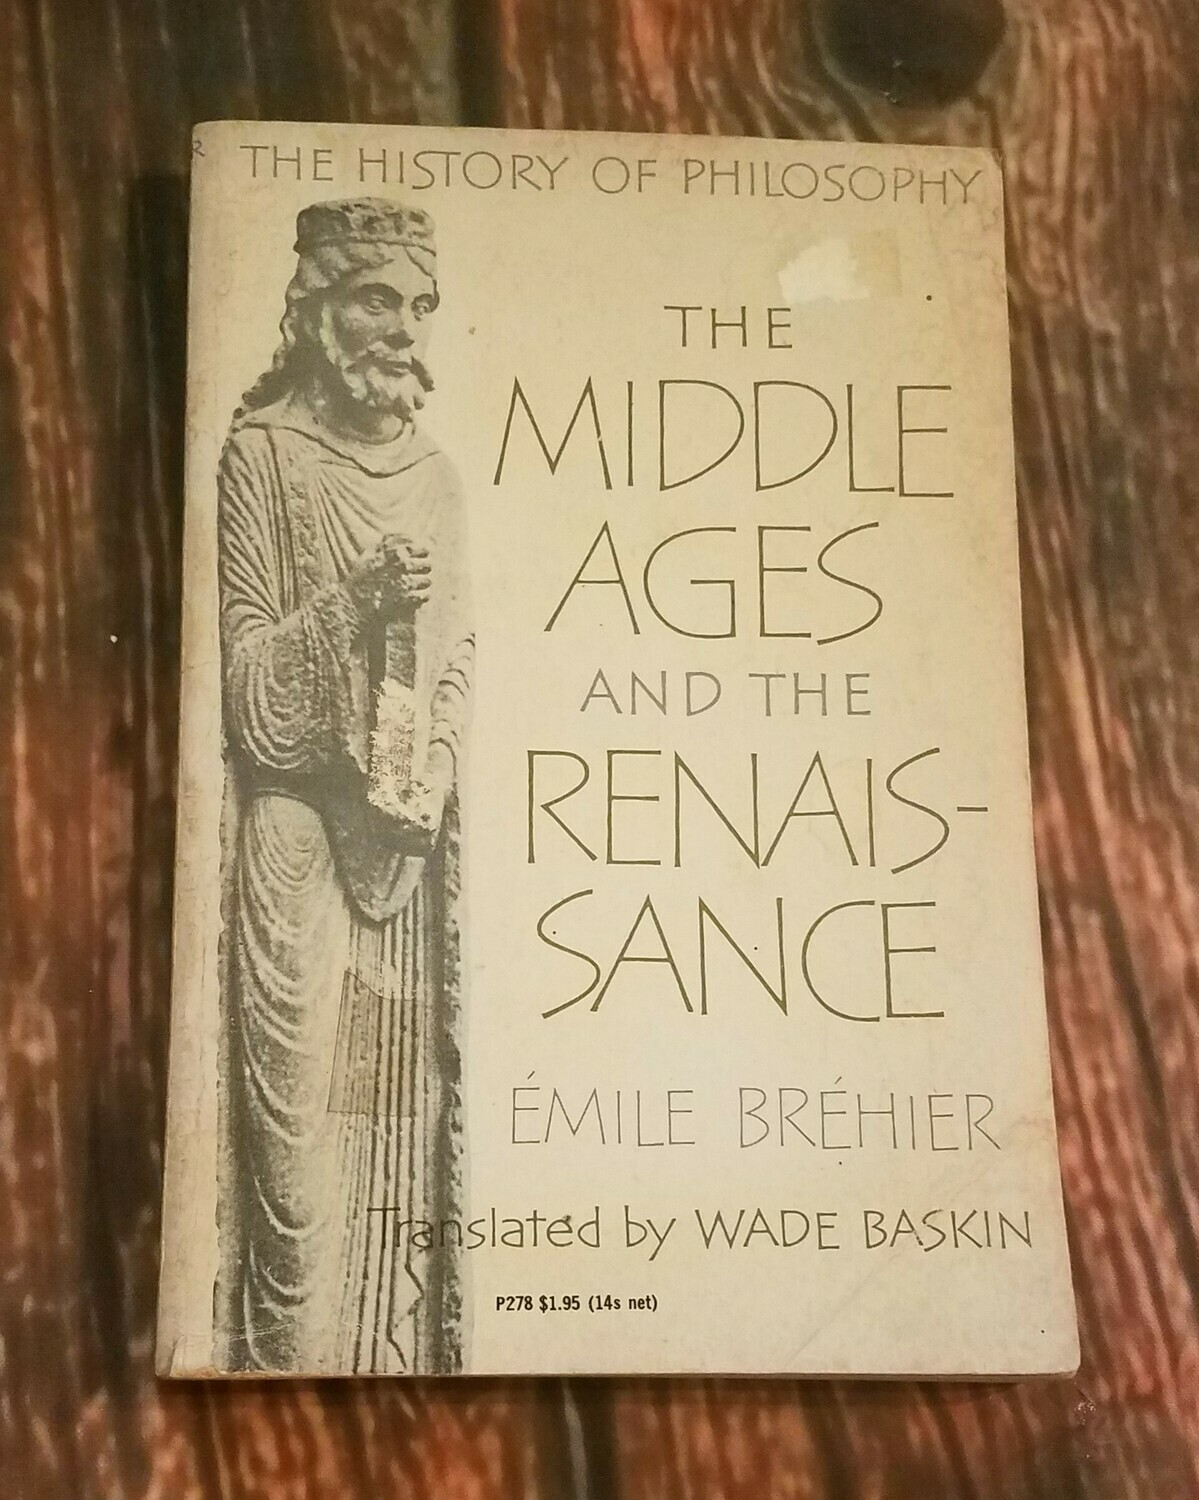 The History of Philosophy: The Middle Ages and The Renaissance by Emile Brehier and Wade Baskin